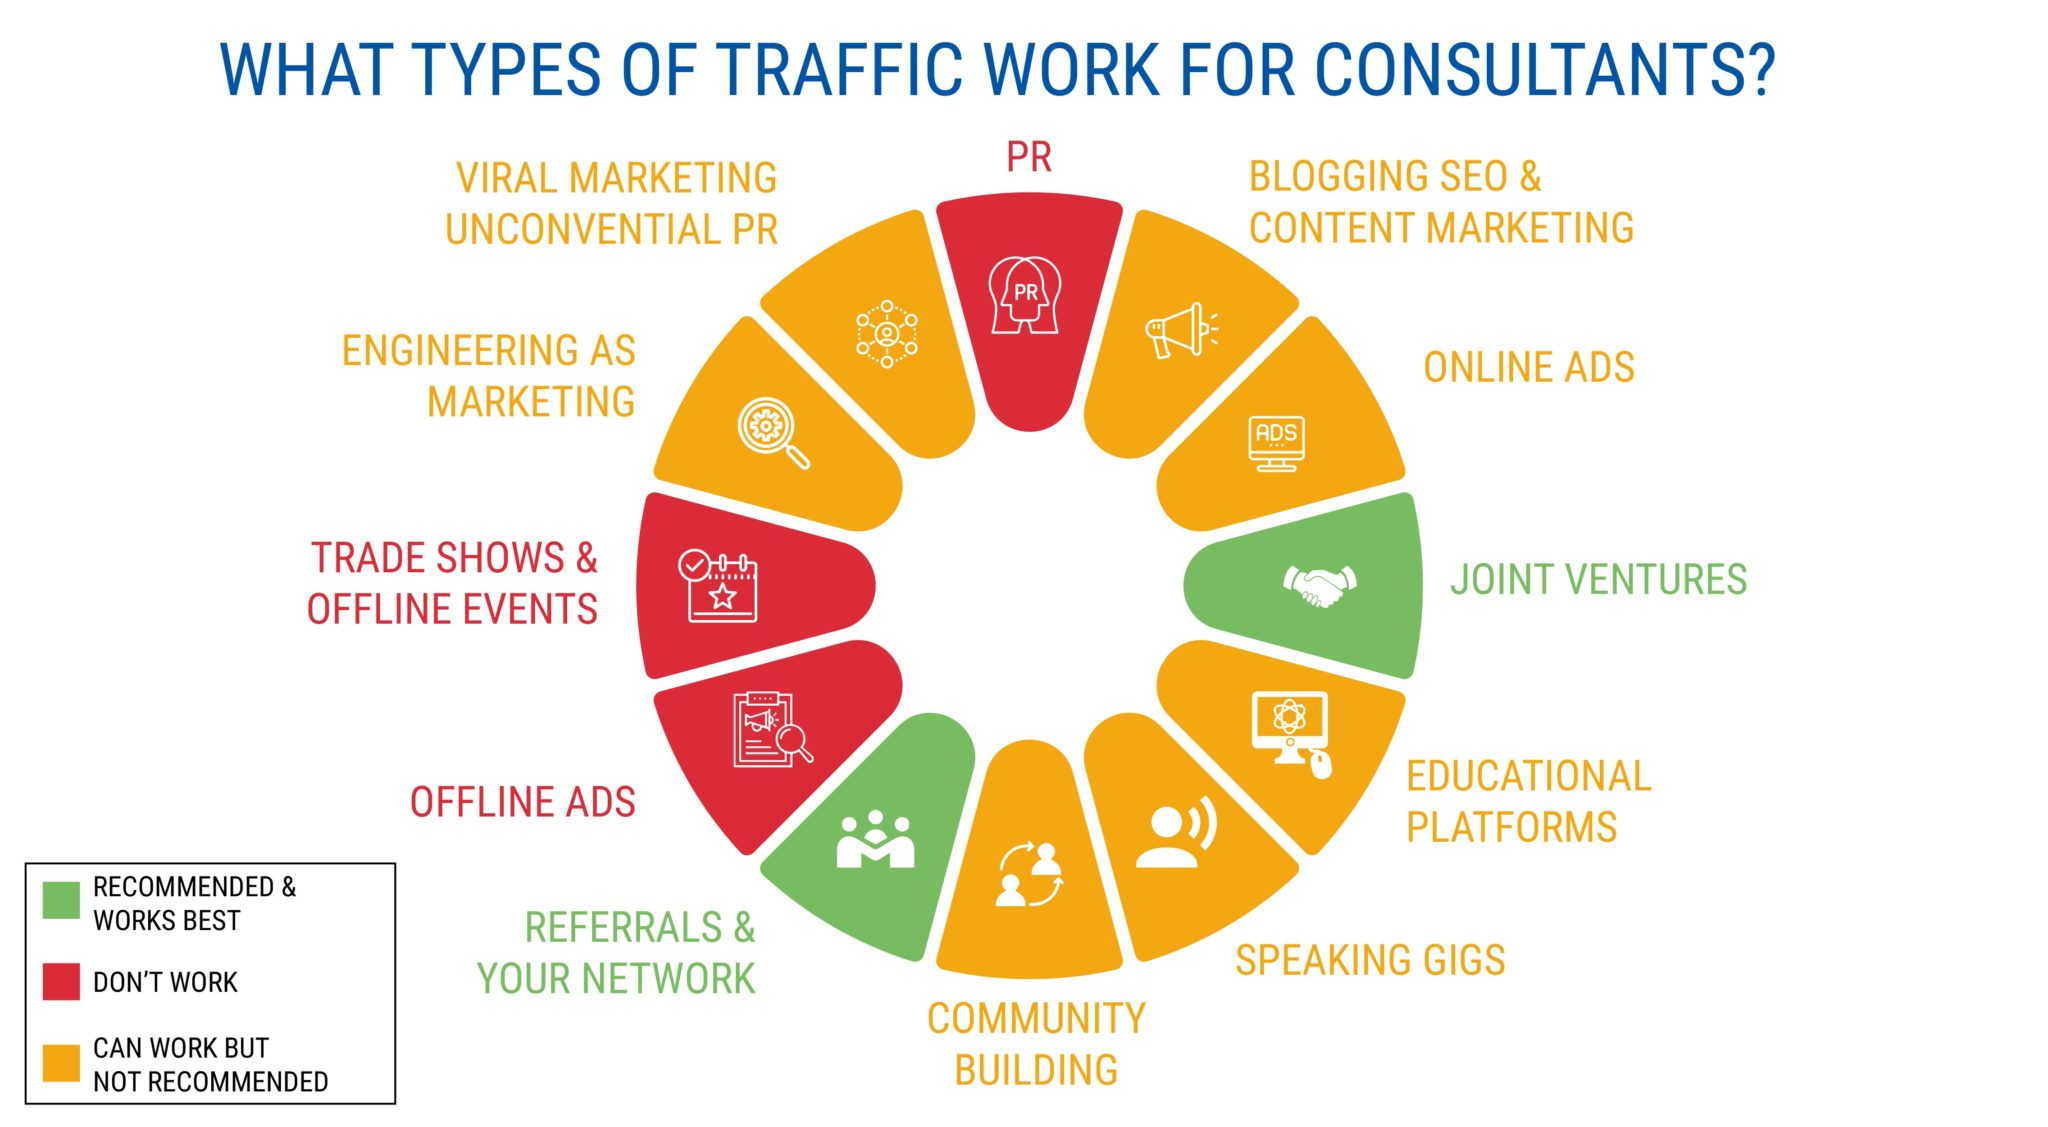 WHAT TYPES OF TRAFFIC WORK FOR CONSULTANTS